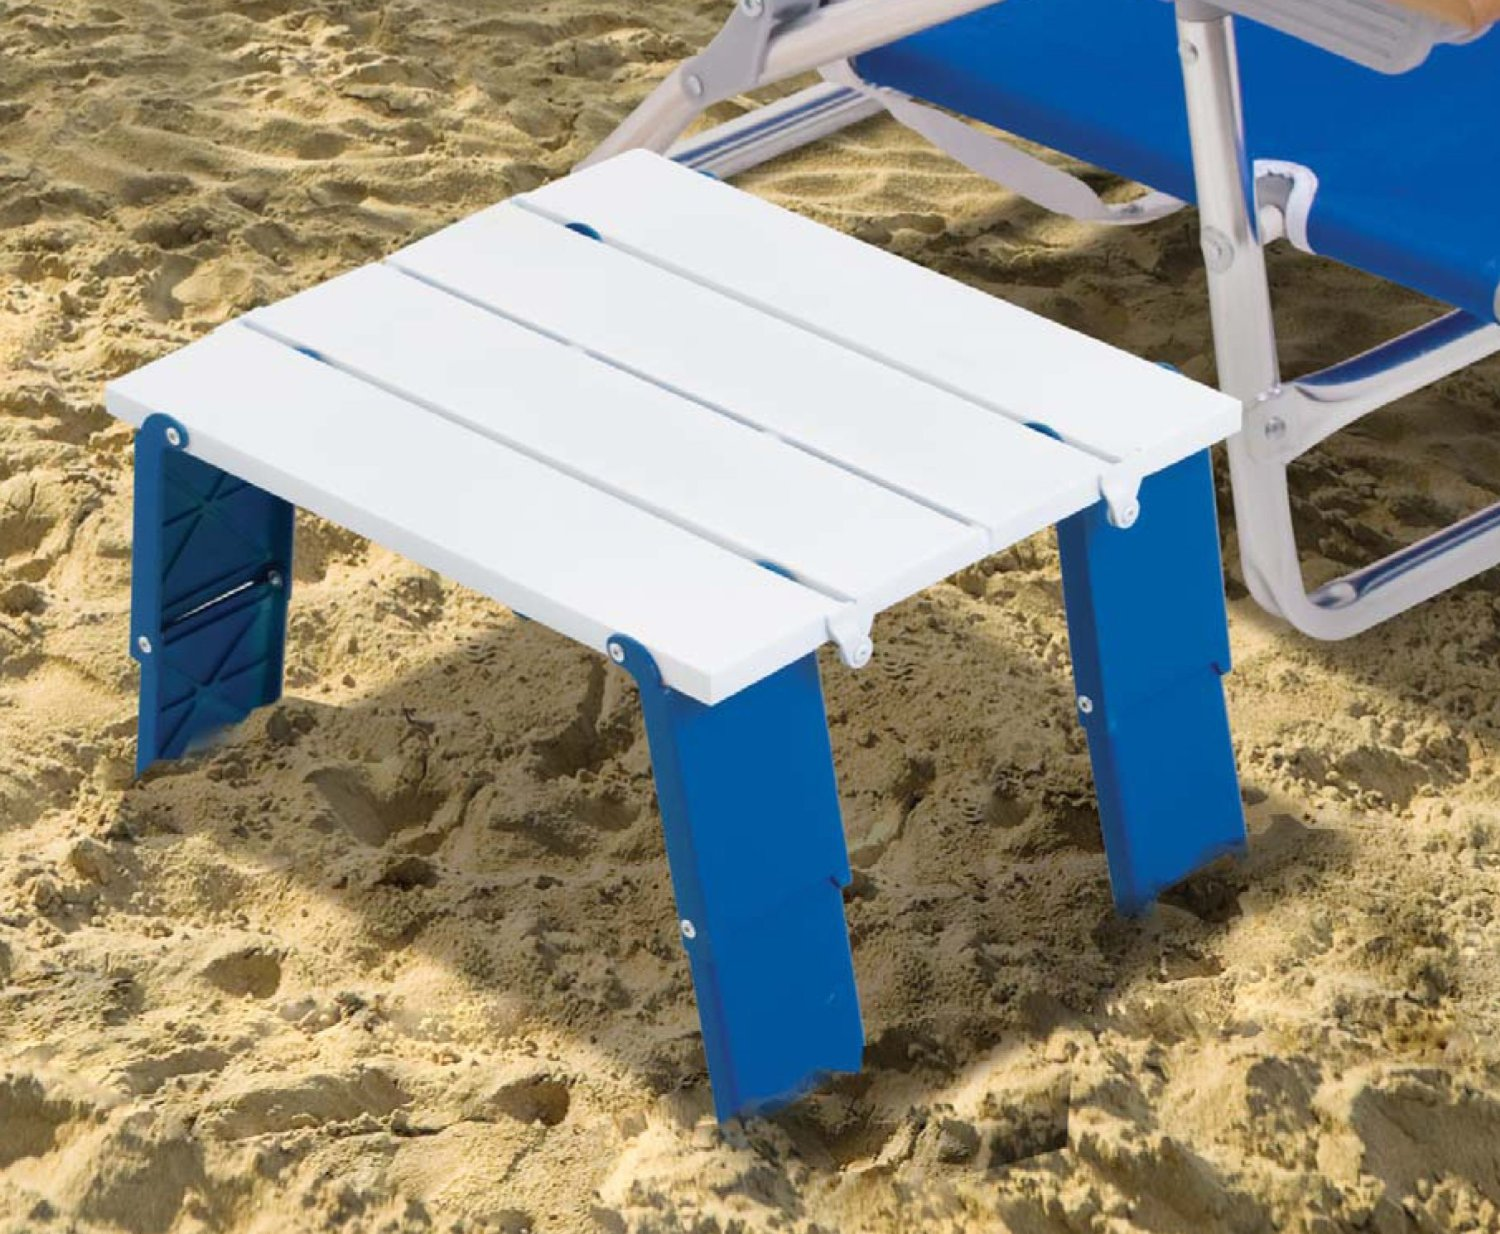 The Personal Beach Table by Rio Beach